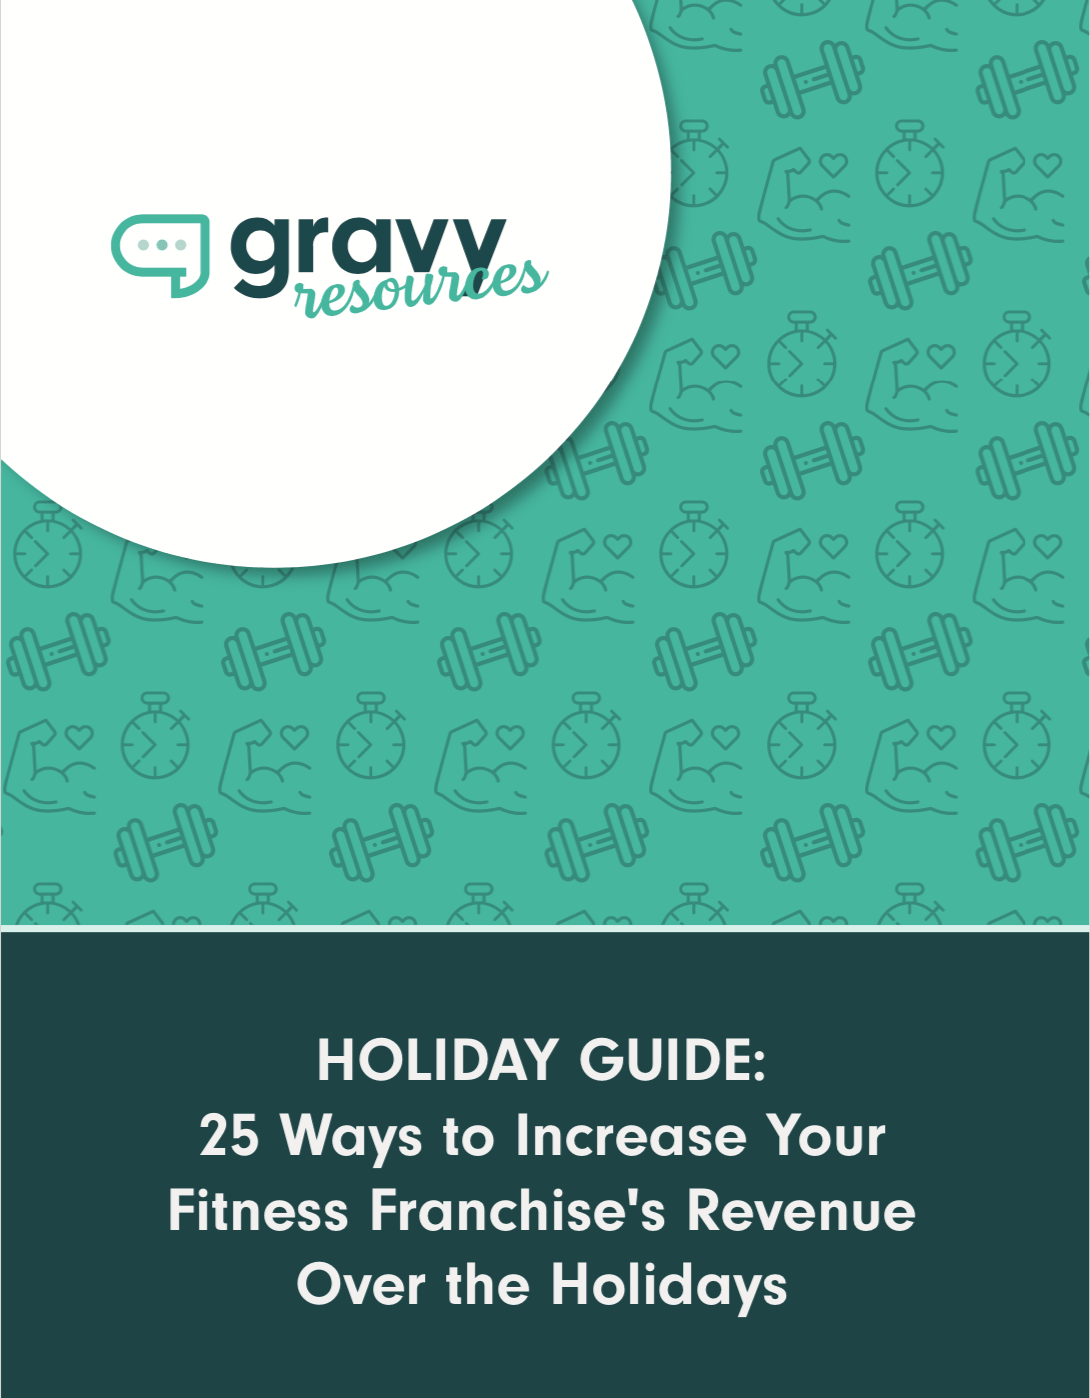 gravy holiday guide